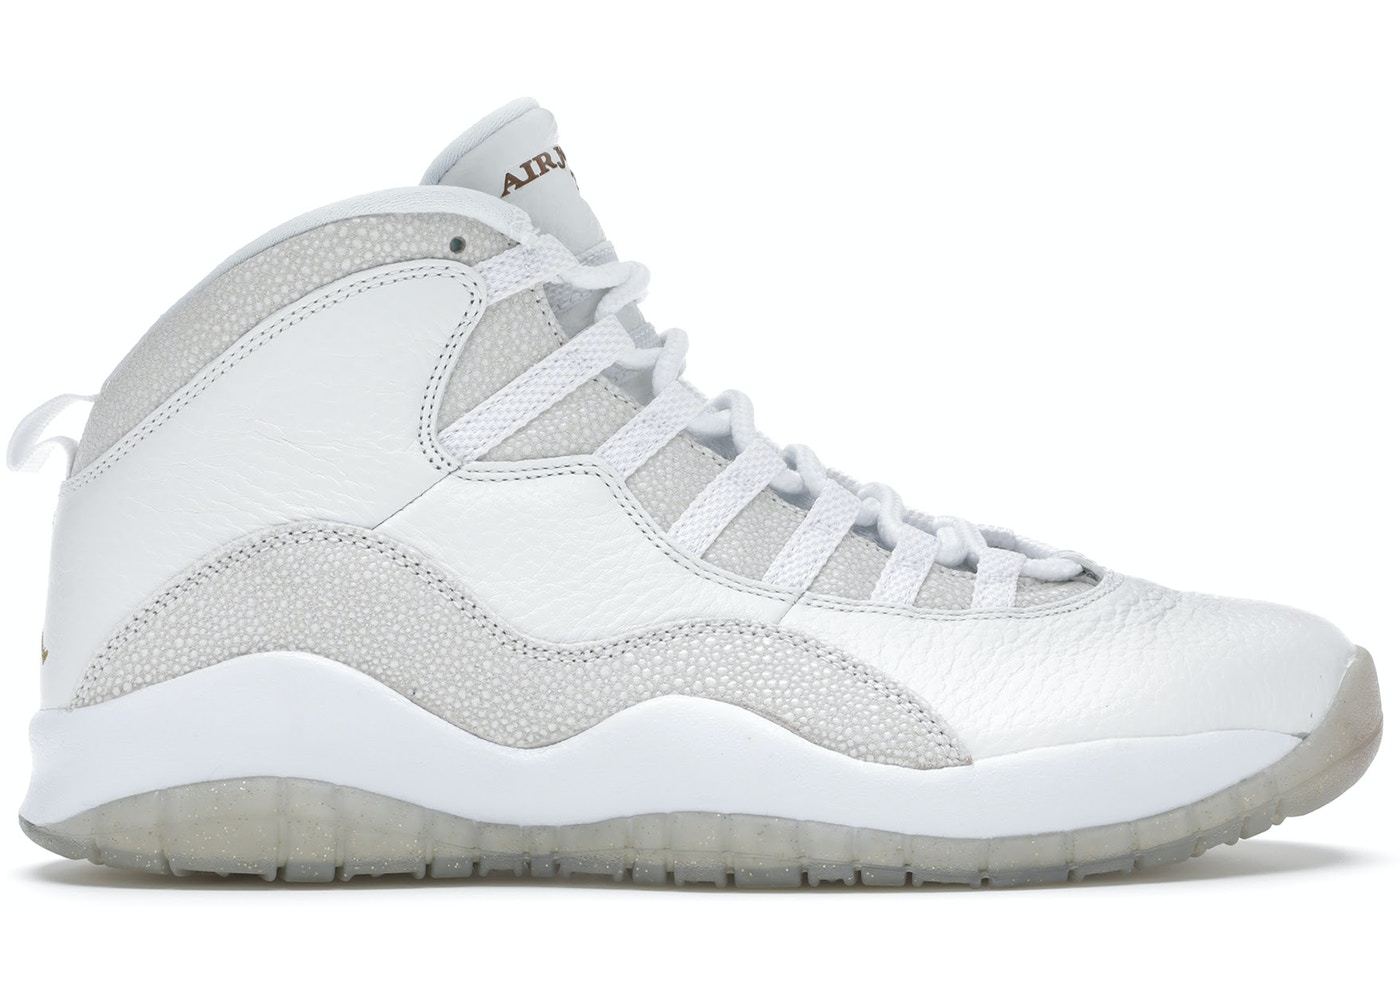 online store 5f6ef 112d0 Buy Air Jordan 10 Shoes & Deadstock Sneakers